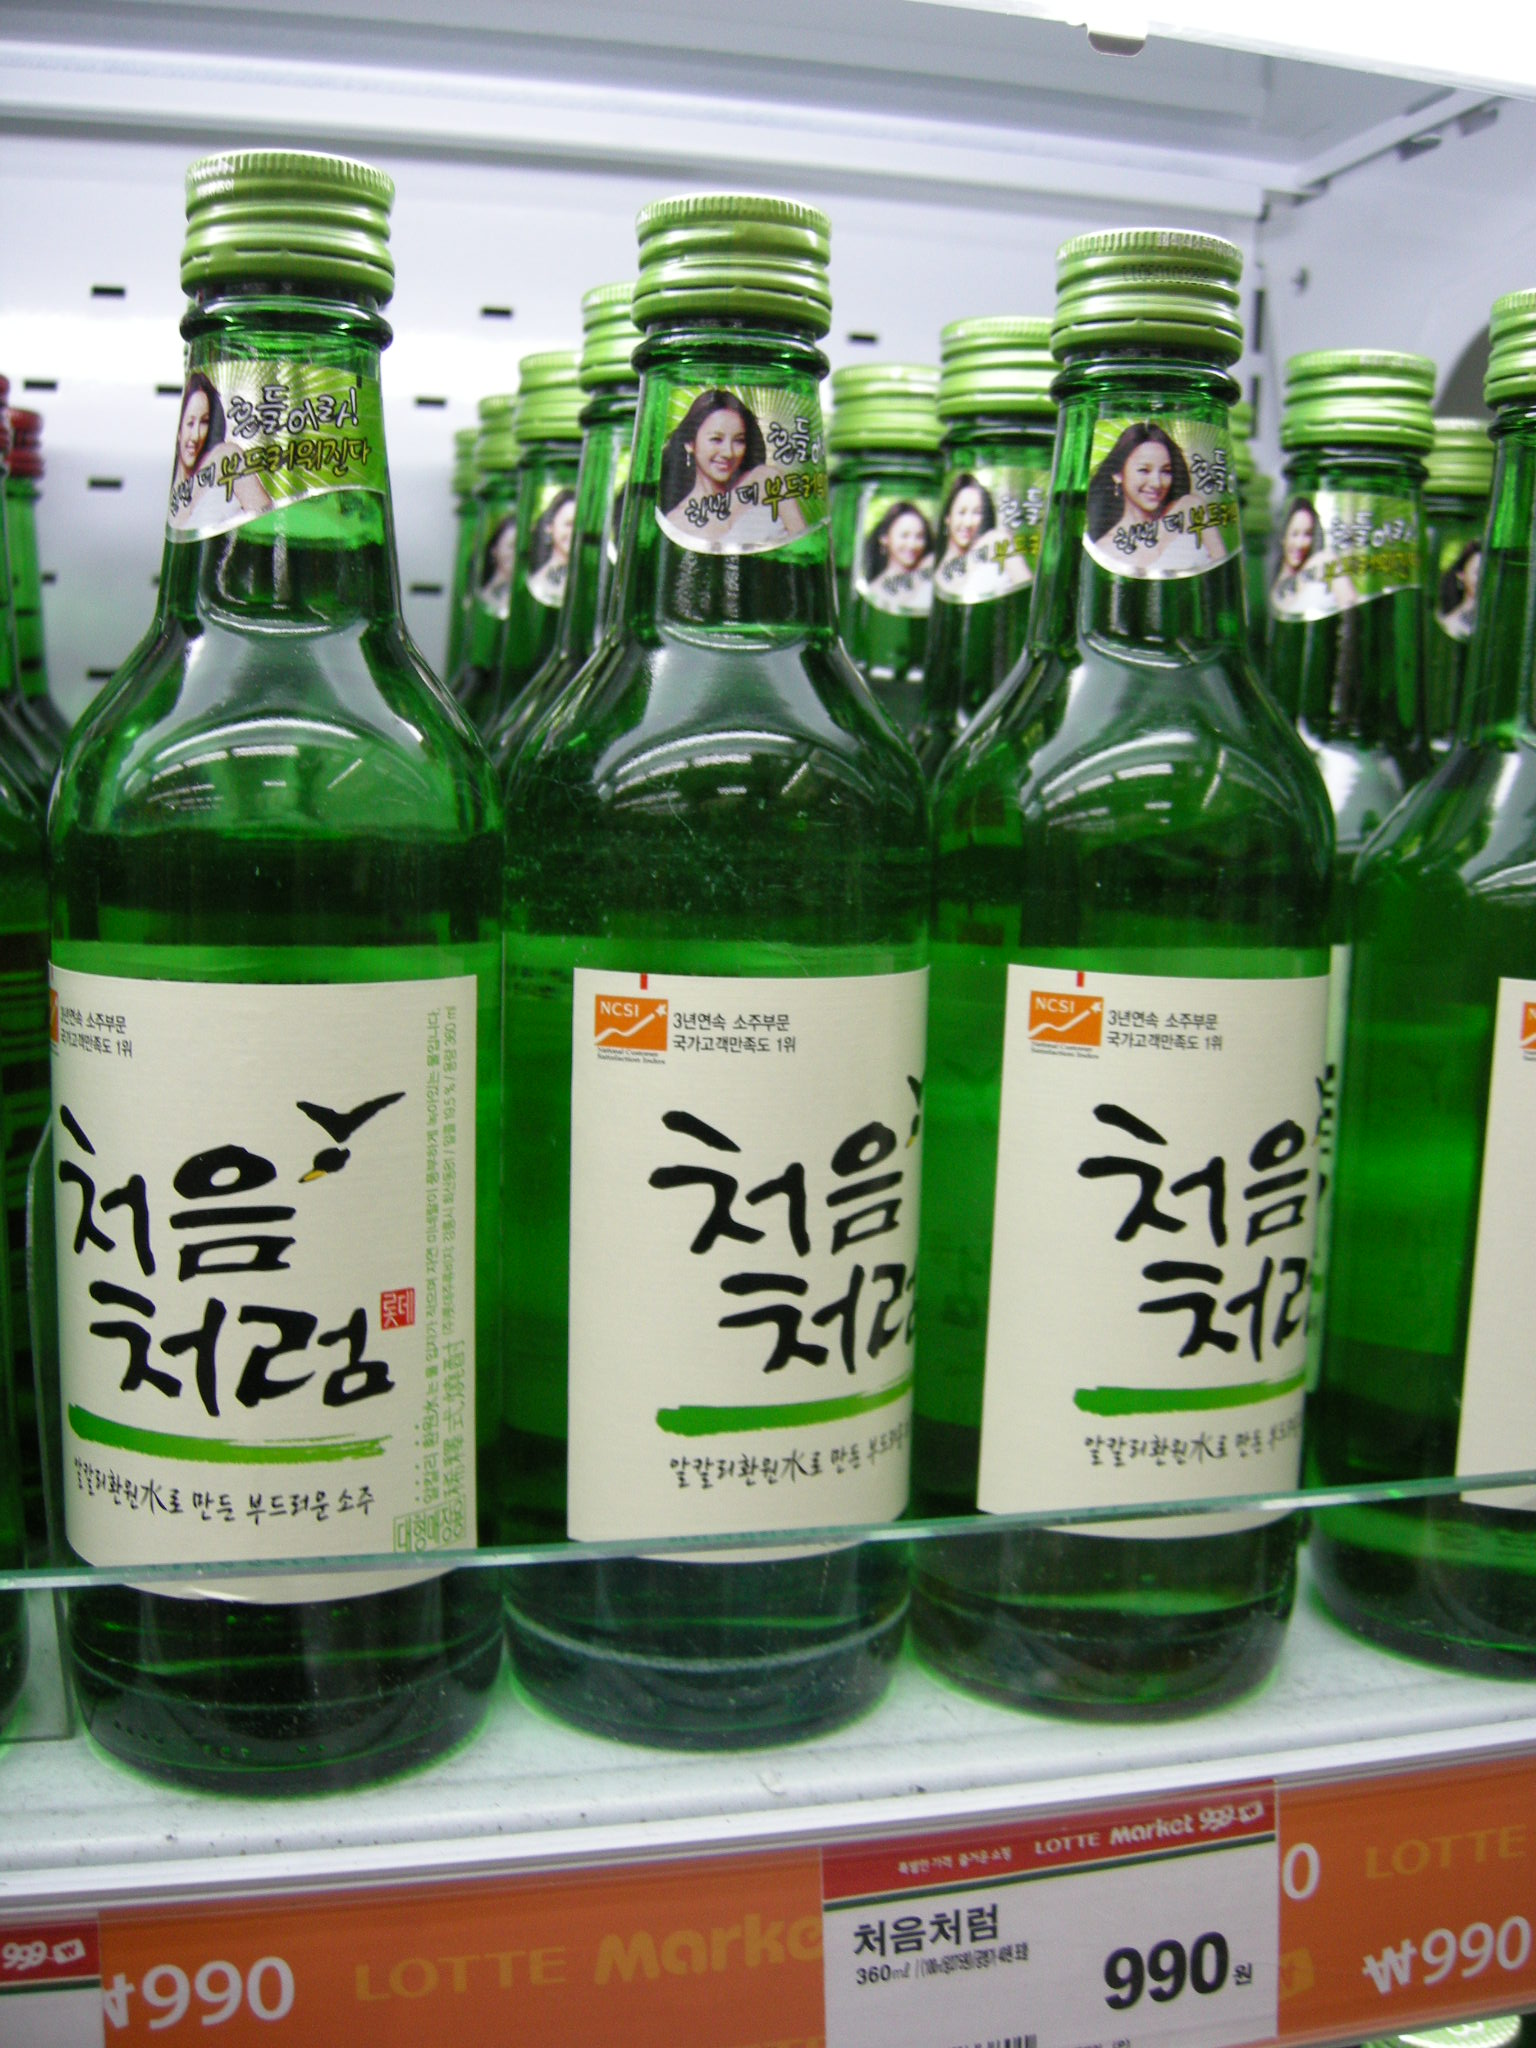 Bottles of Korean brand soju.